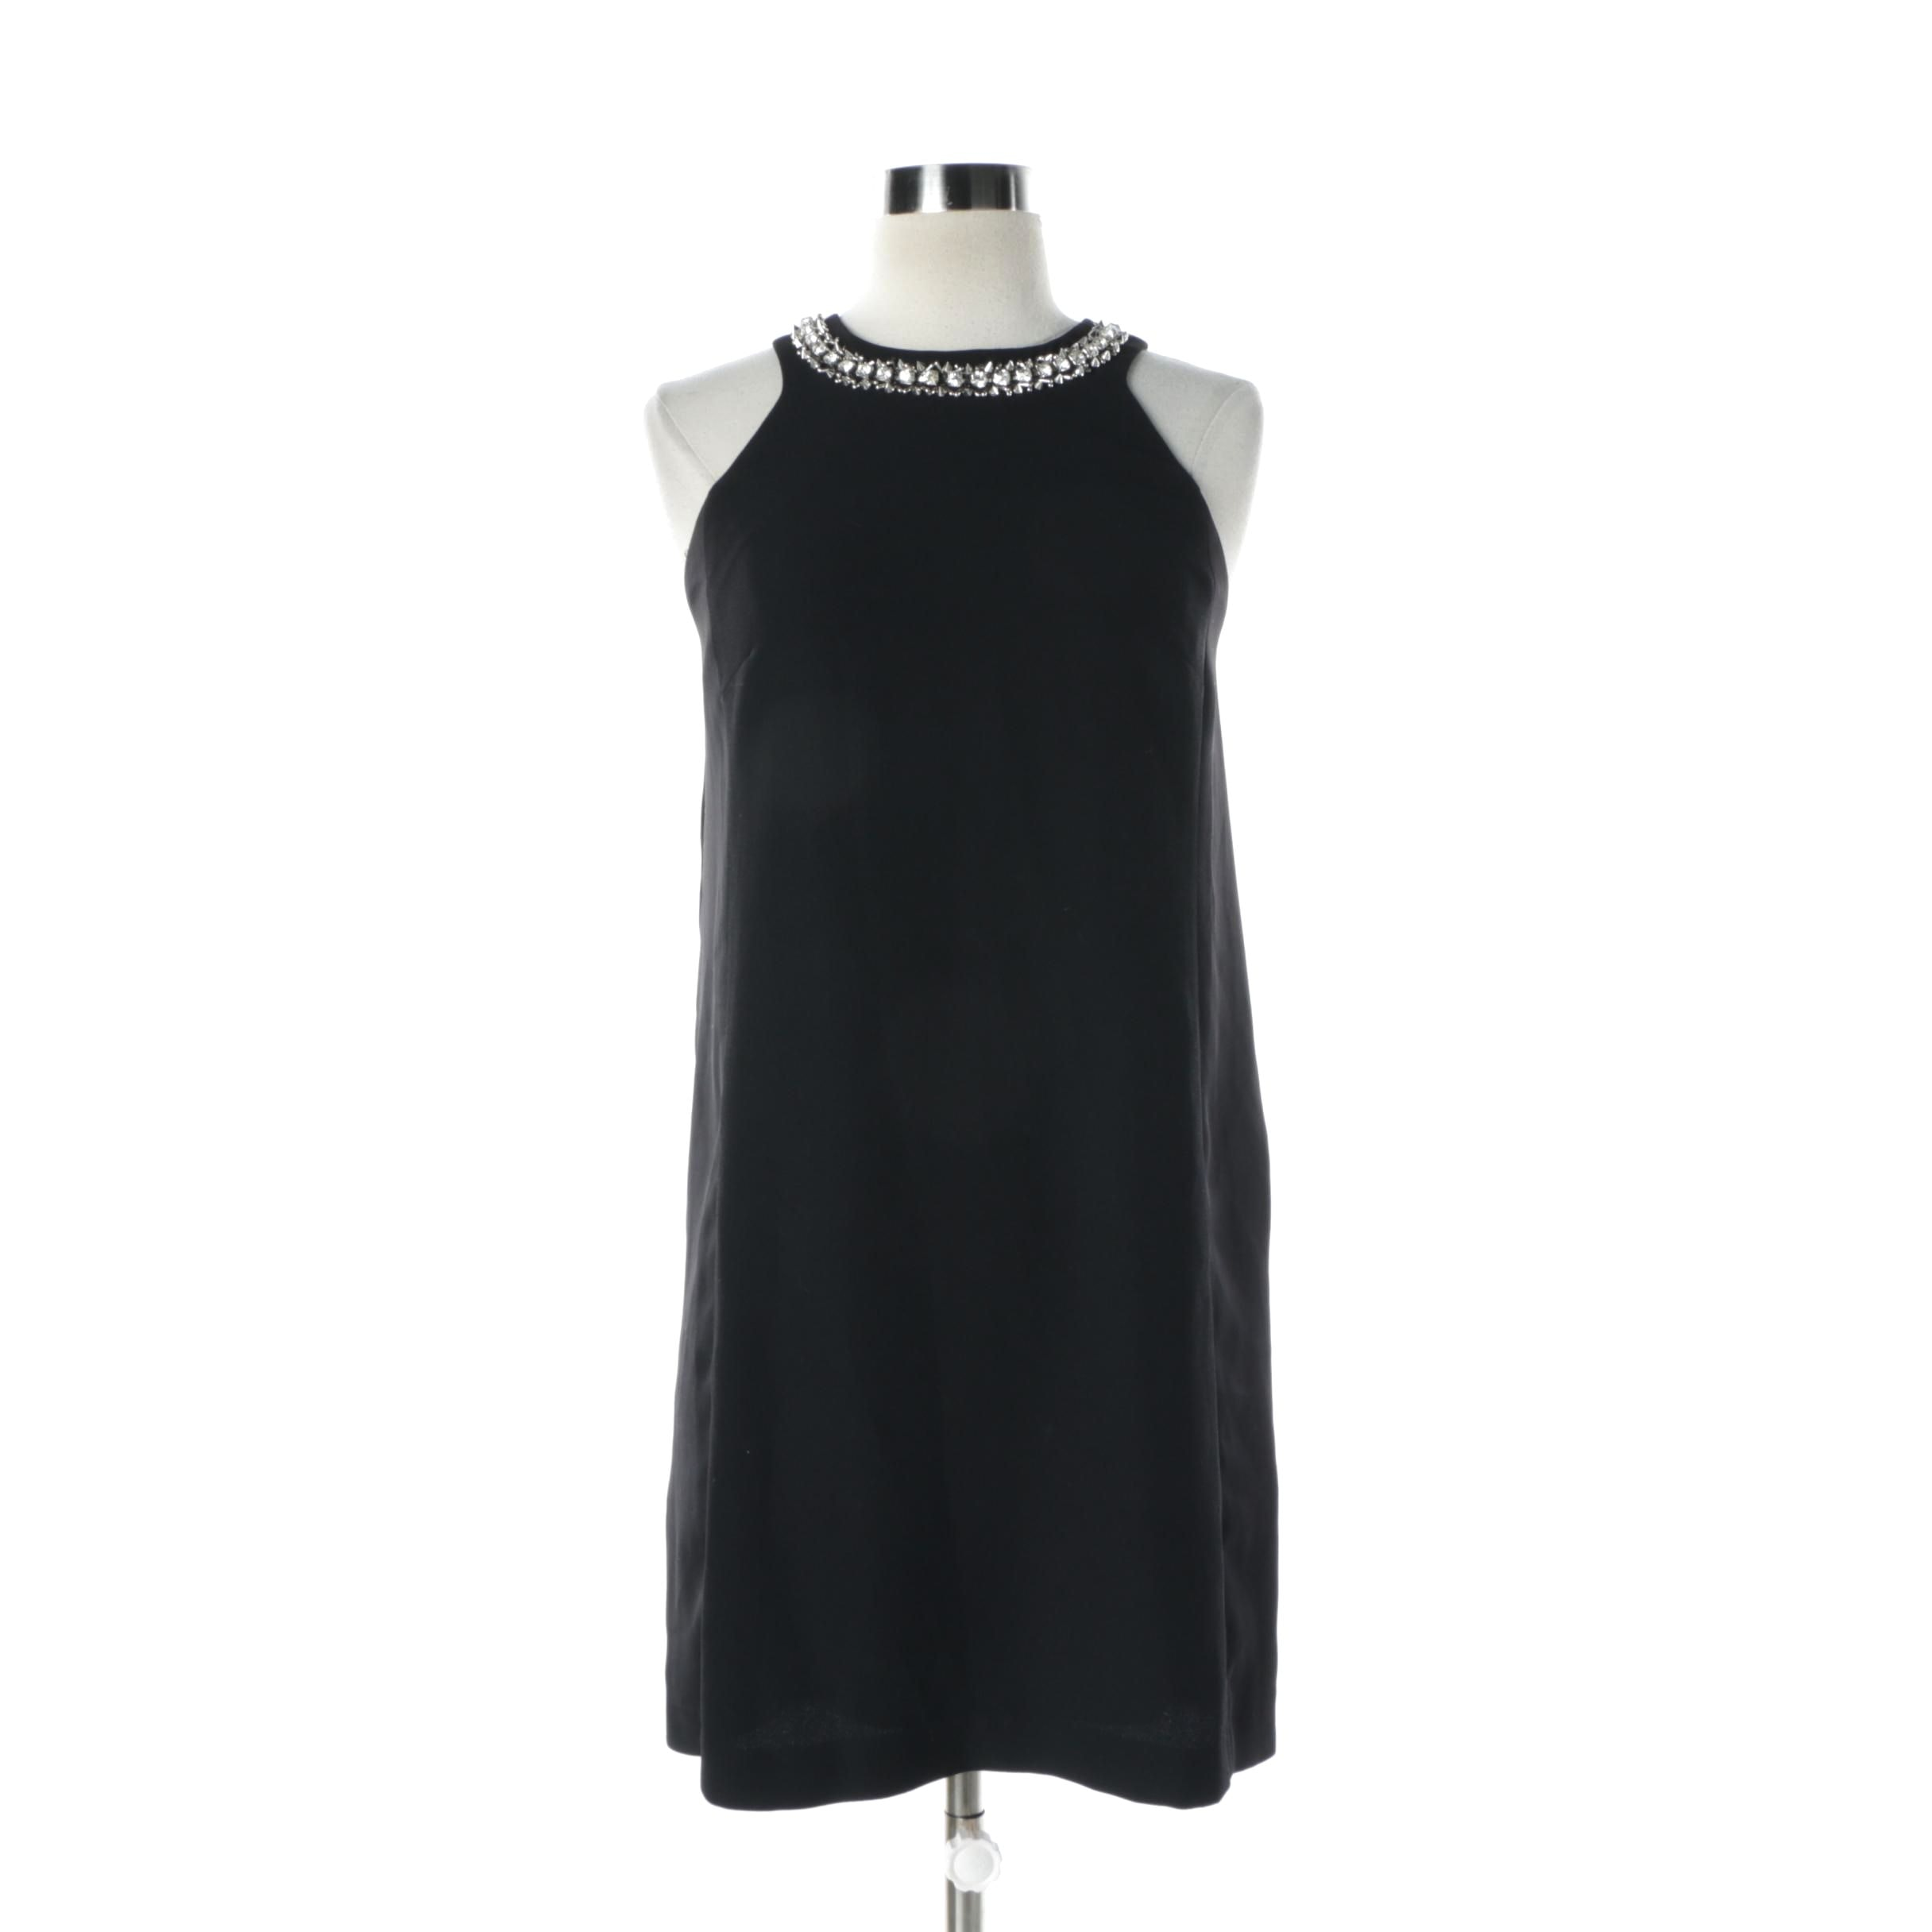 Rebecca Taylor Black Cocktail Dress with Rhinestone and Stud Collar